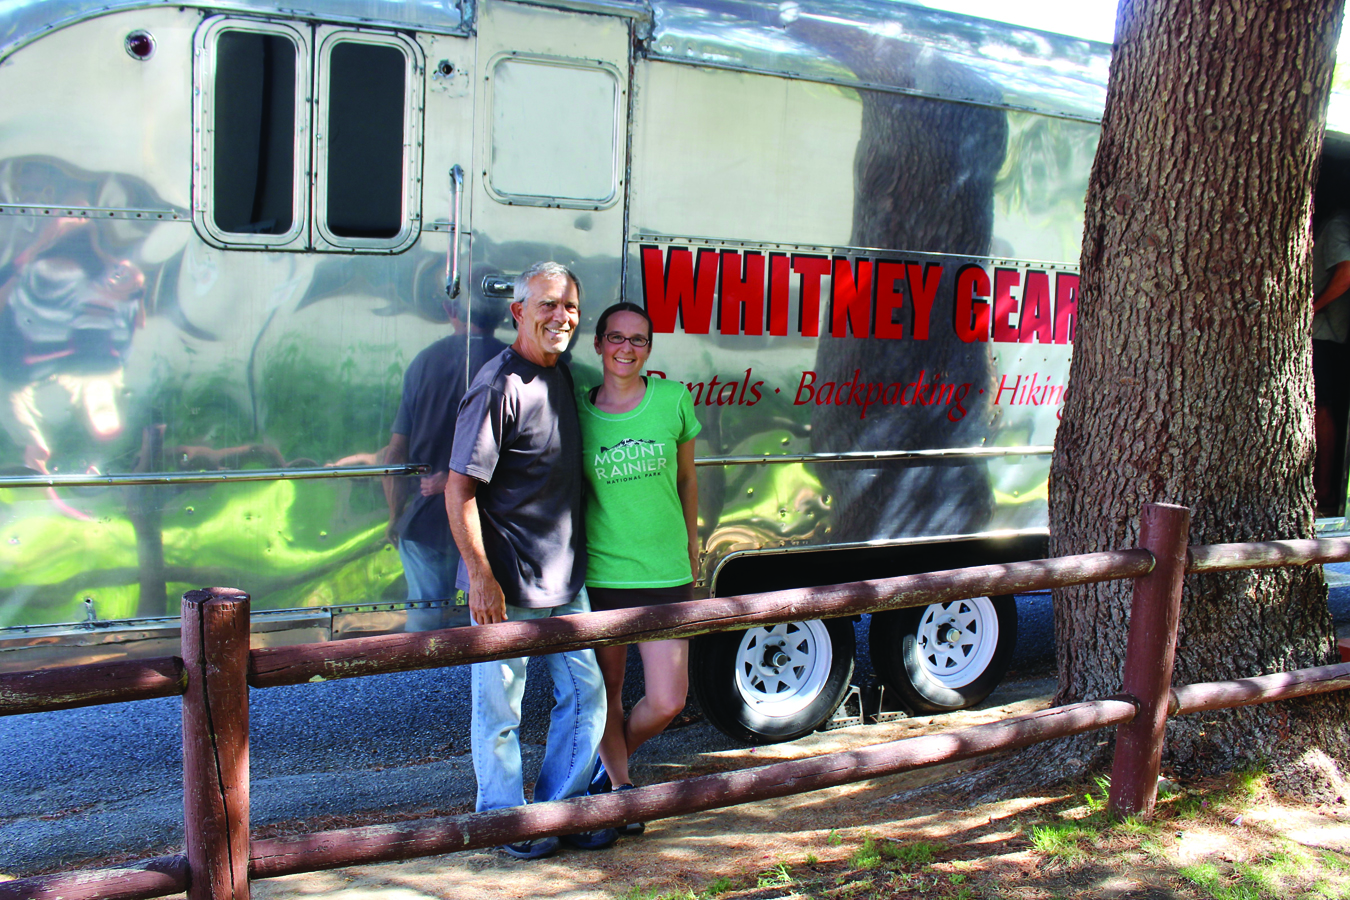 2017-6-5_Mobile Business_Whitney Gear (6)- Charlie Brown and Mary Scudders of Cartago